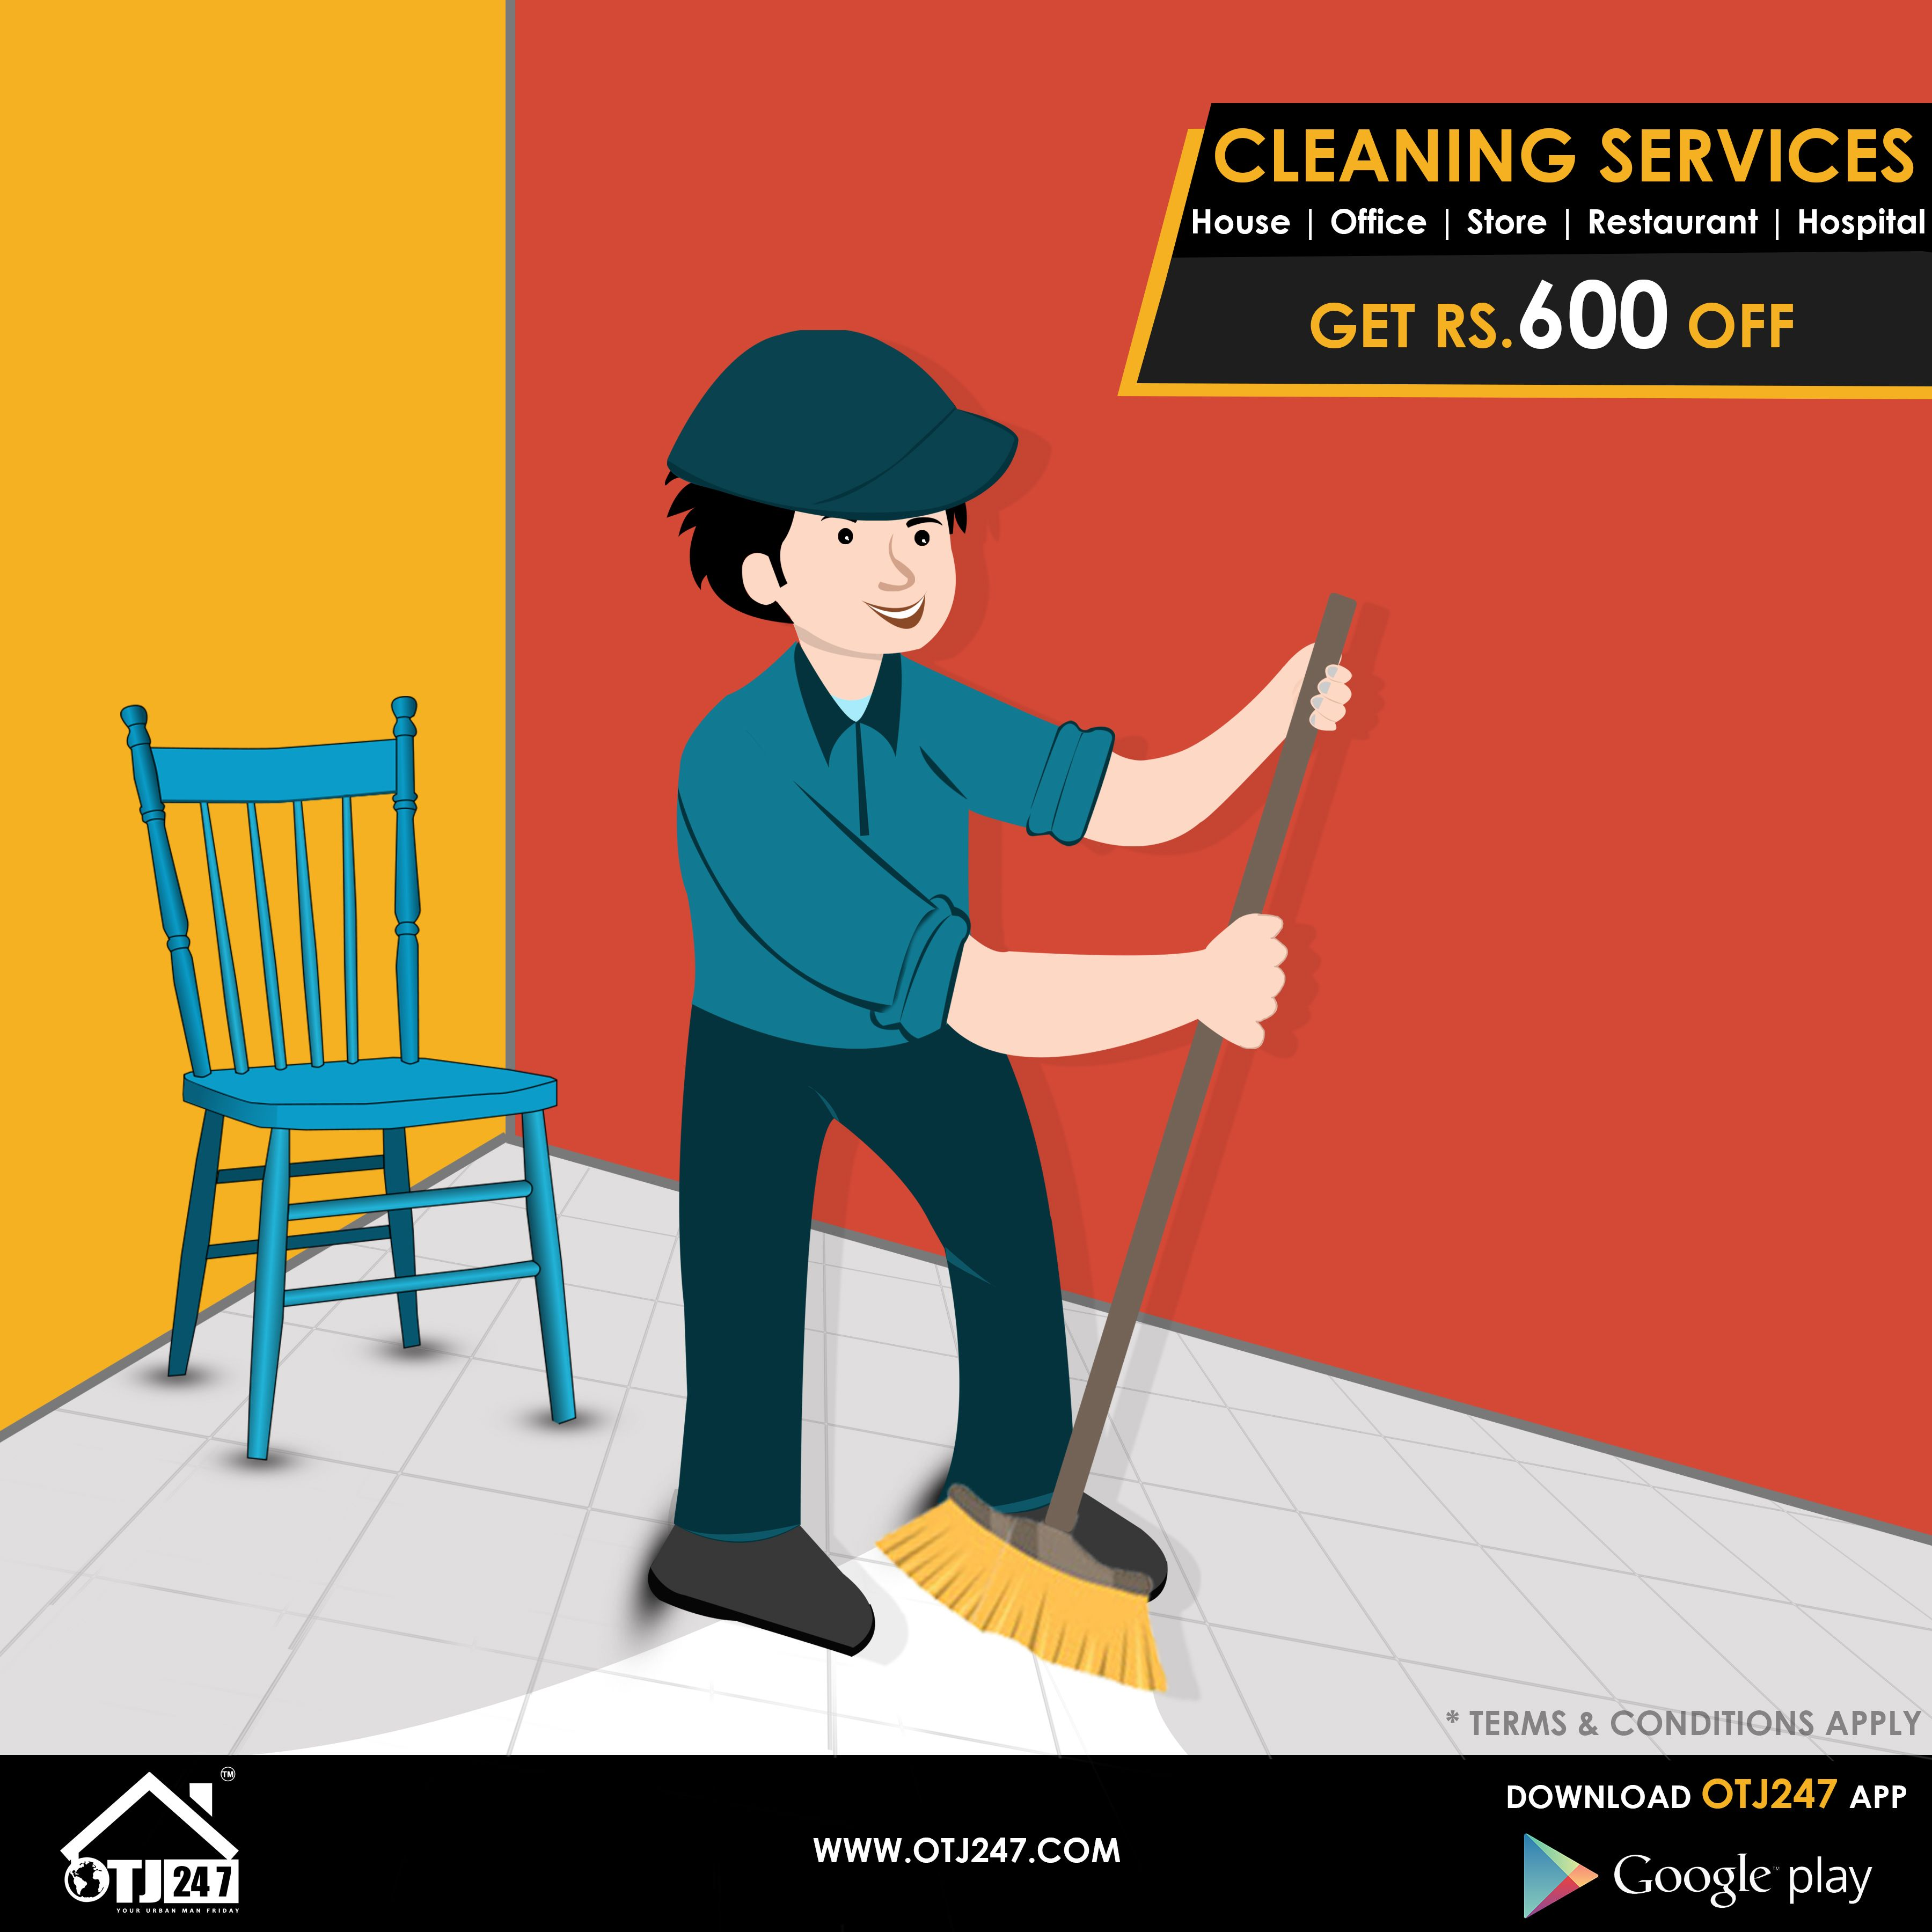 Bathroom cleaning services in bangalore -  Cleaning Services In Bangalore House Office Cleaning Services Carpet Cleaning Services